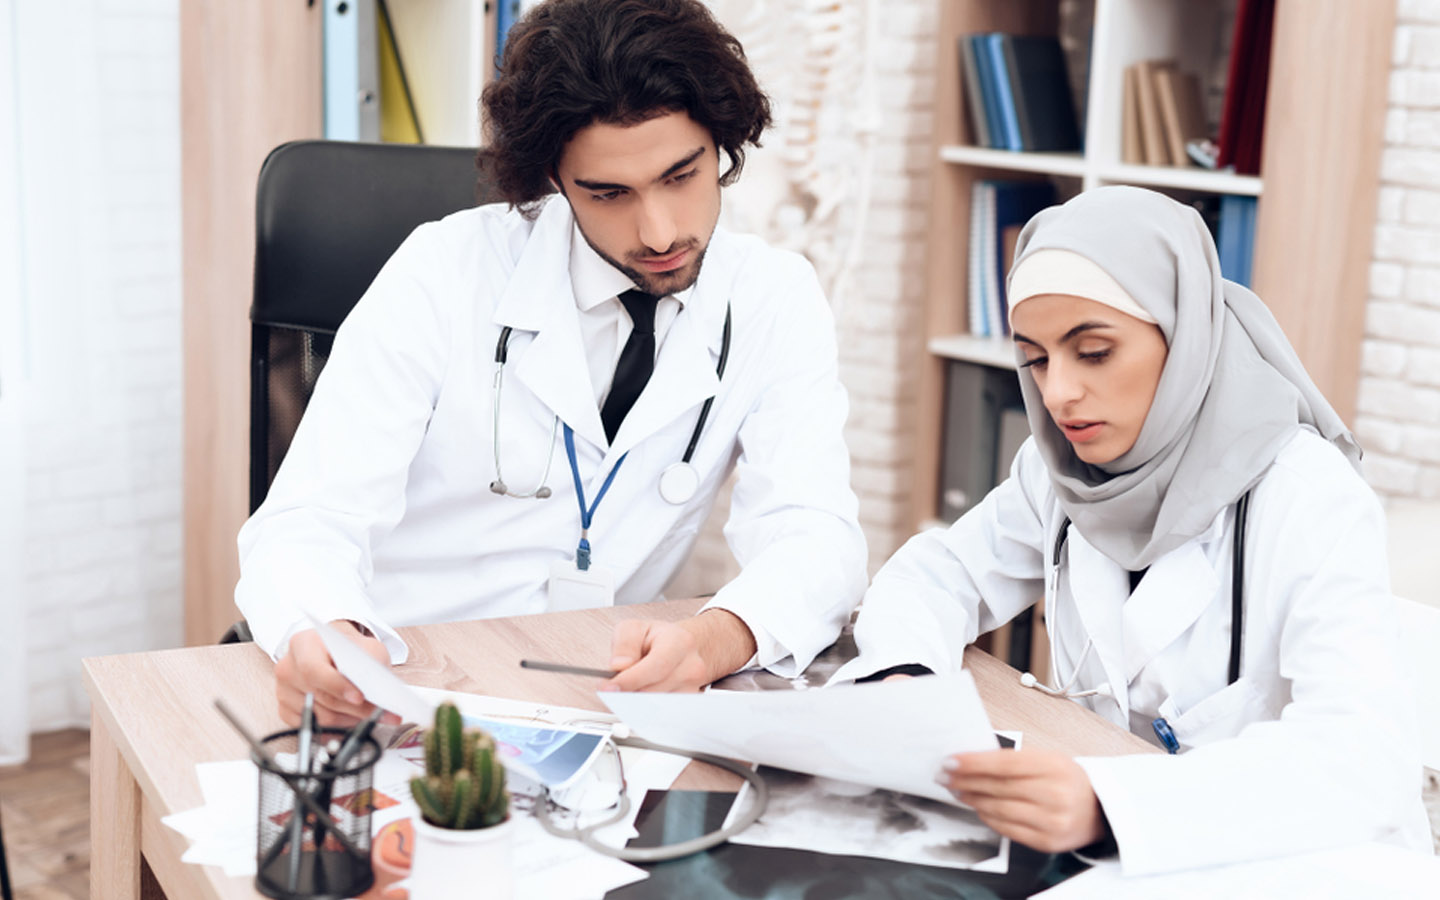 female and male doctors discussing medical report